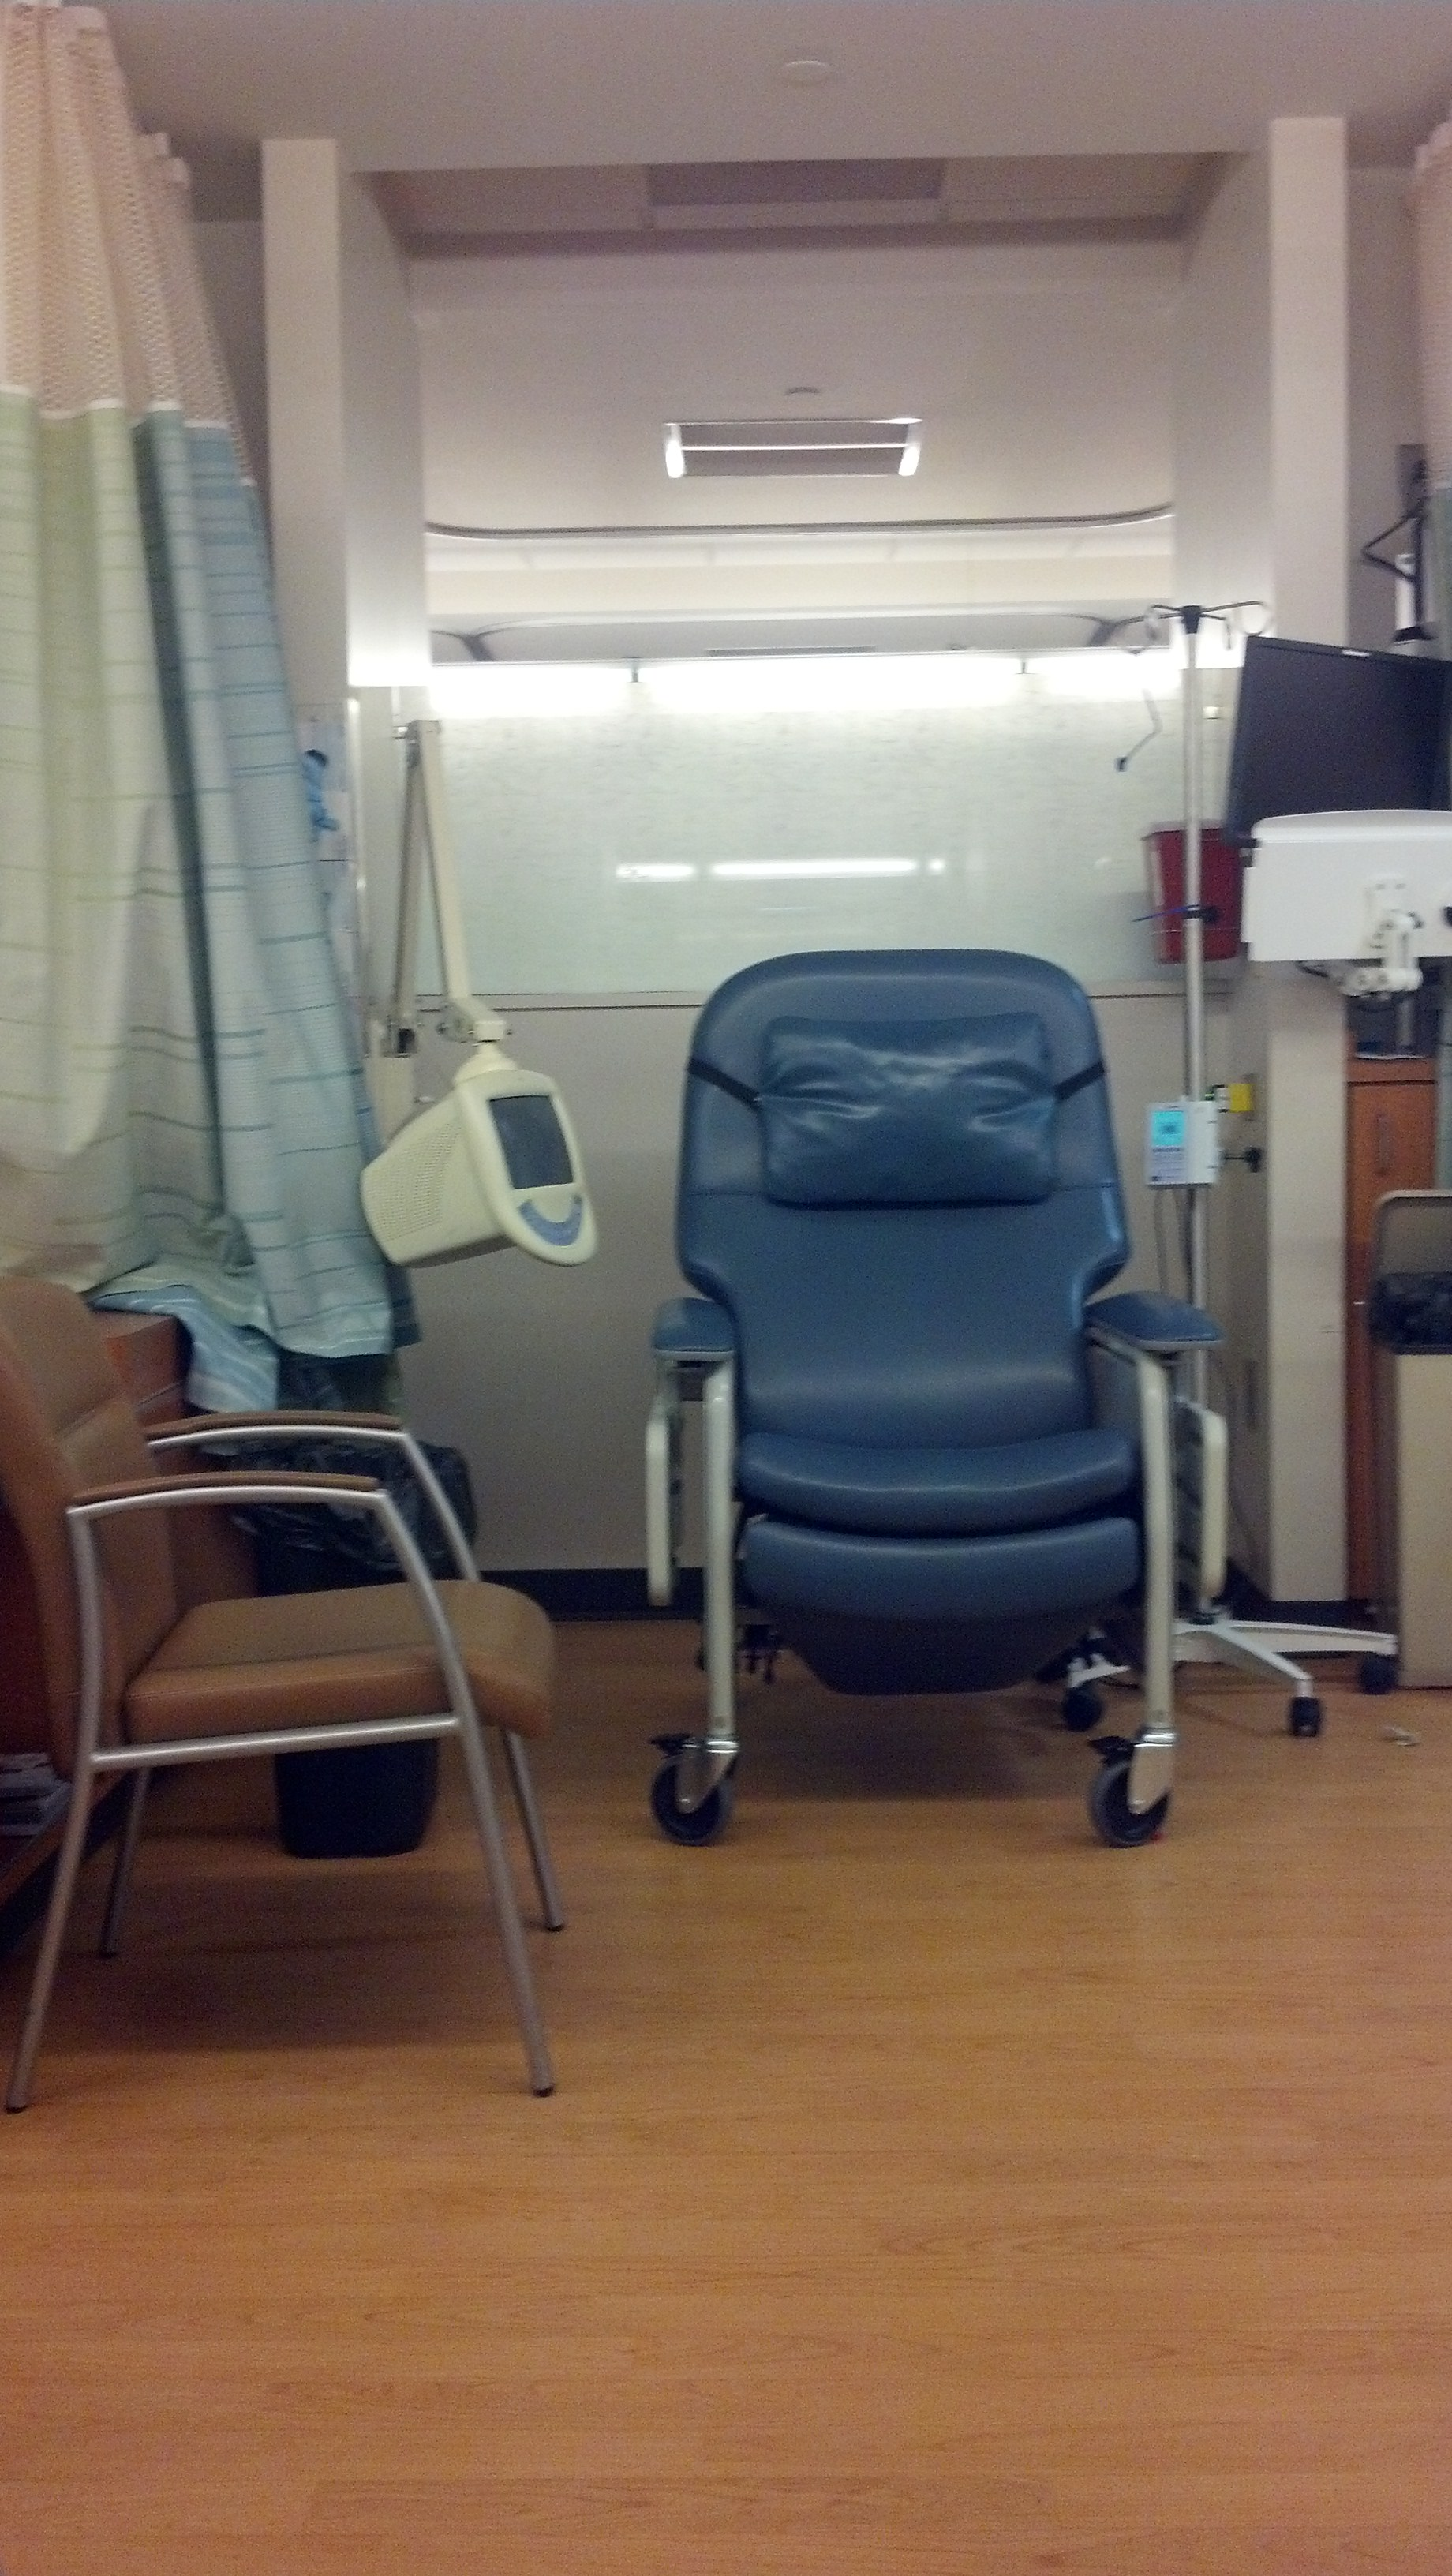 It won't be me sitting in this chemo room